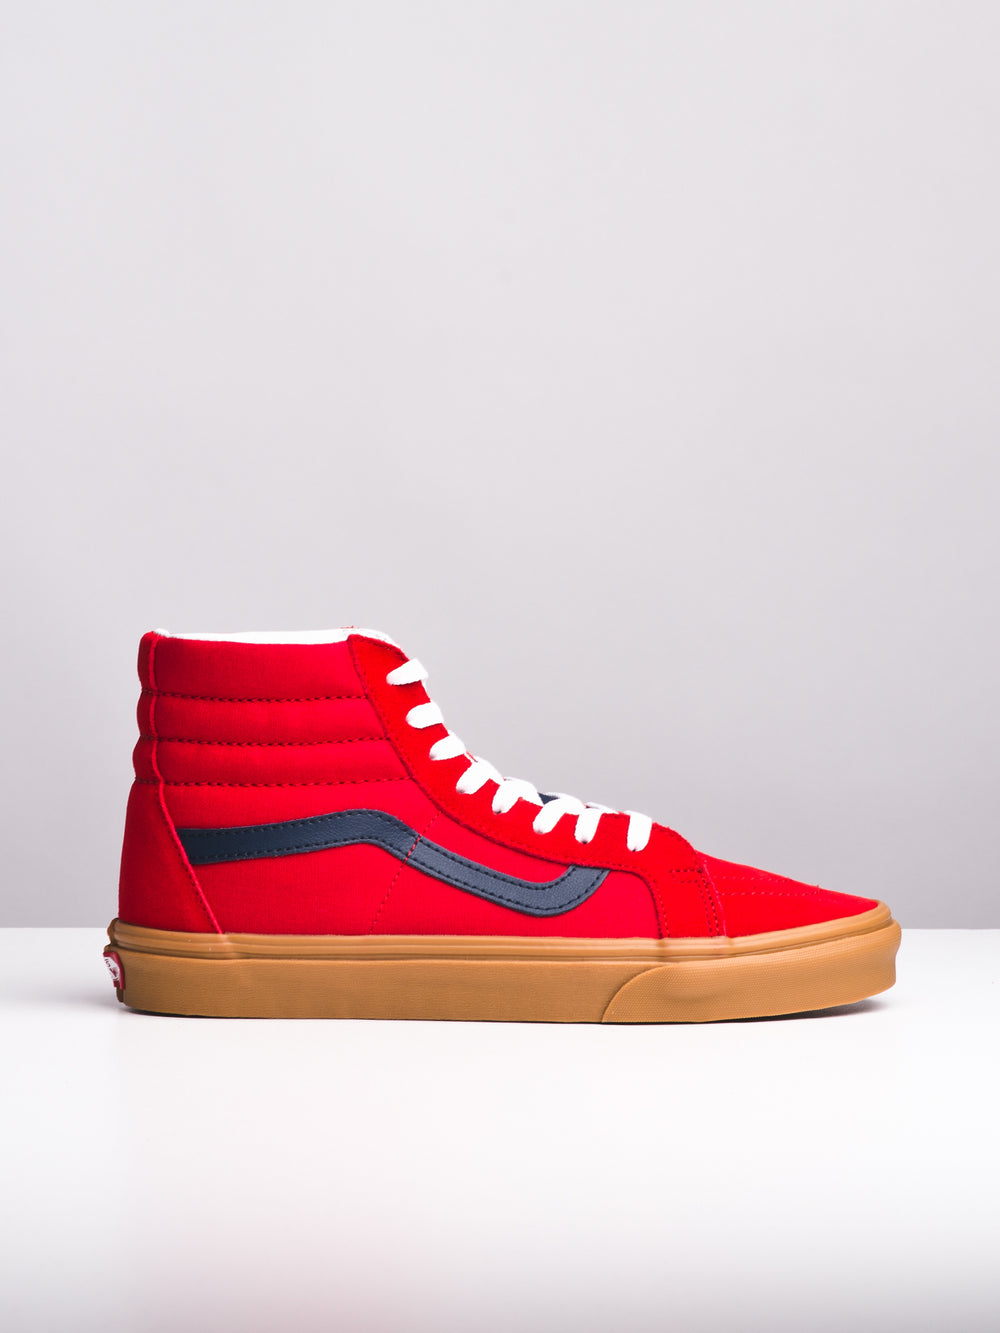 565dcd3a78 MENS SK8 HI REISSUE - RED BLUE